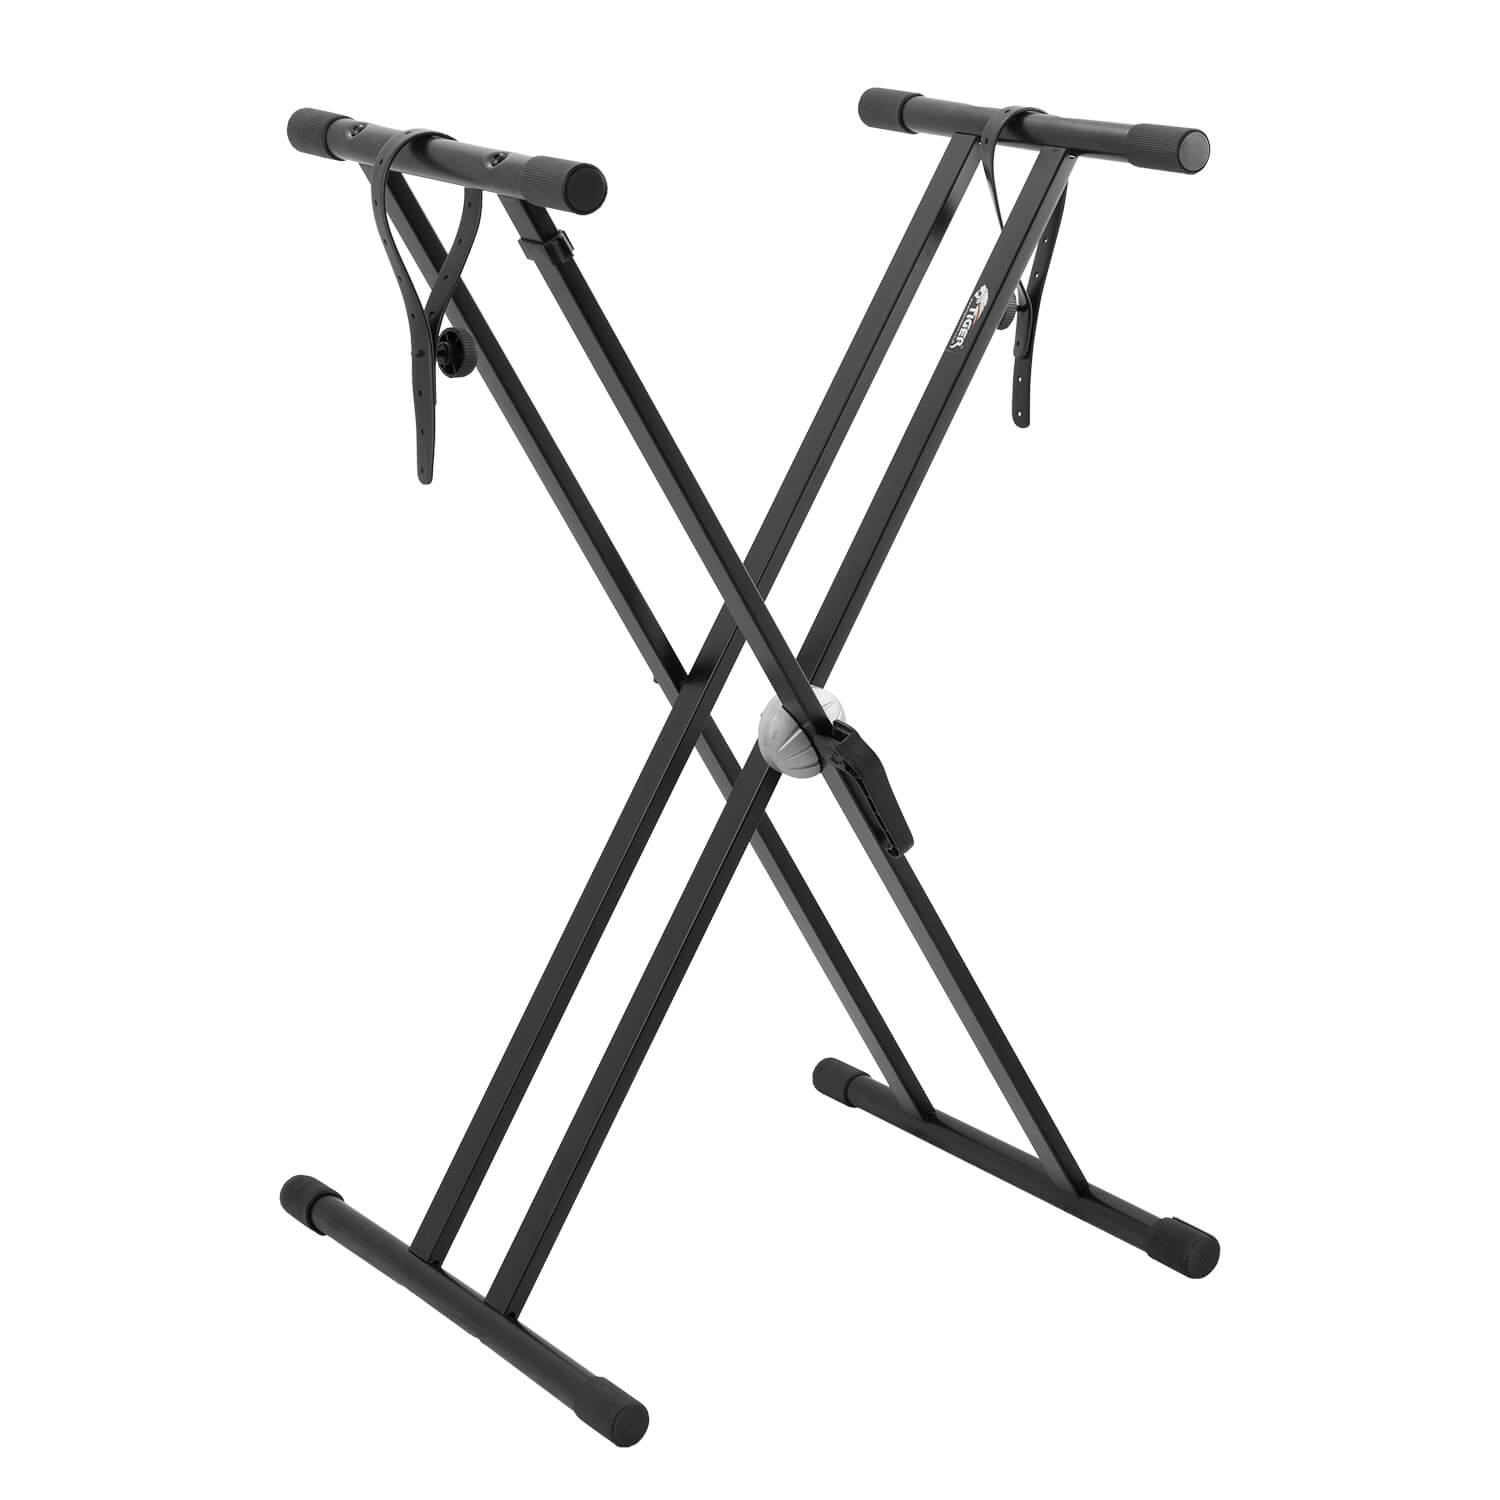 Tiger Double Braced X Frame Keyboard Stand and Securing Straps